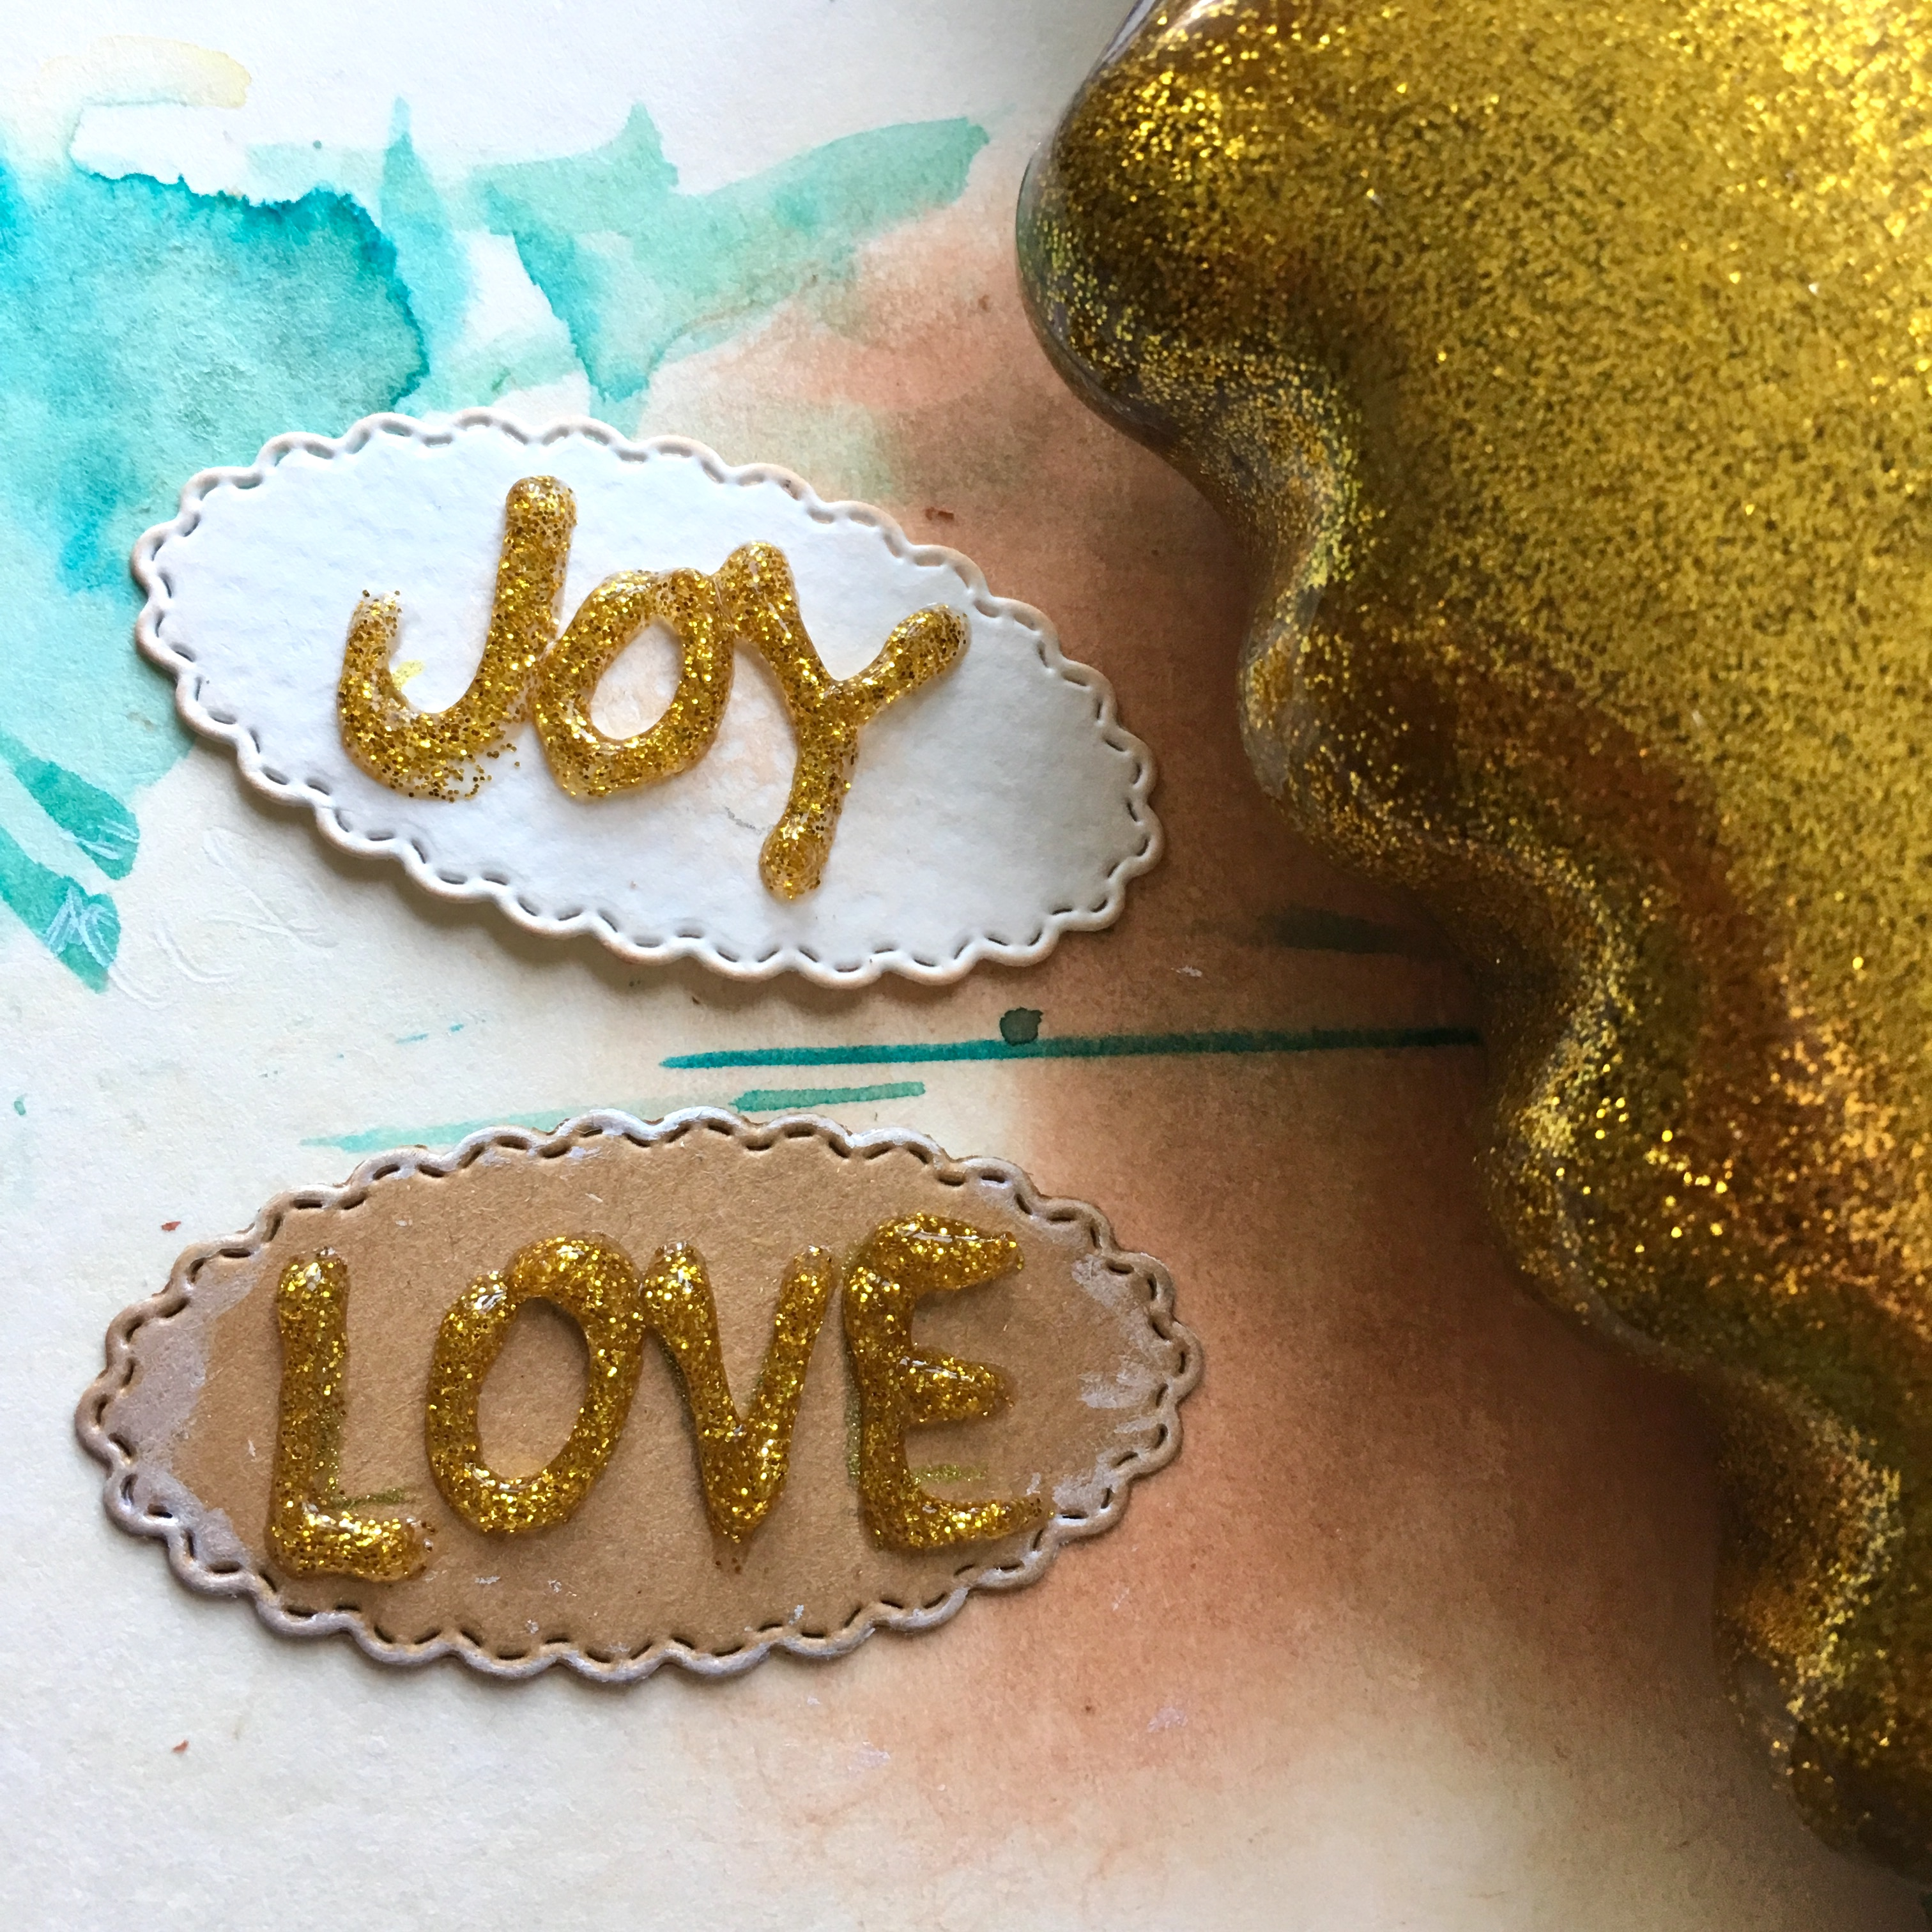 glitter glue messages LOVE and JOY